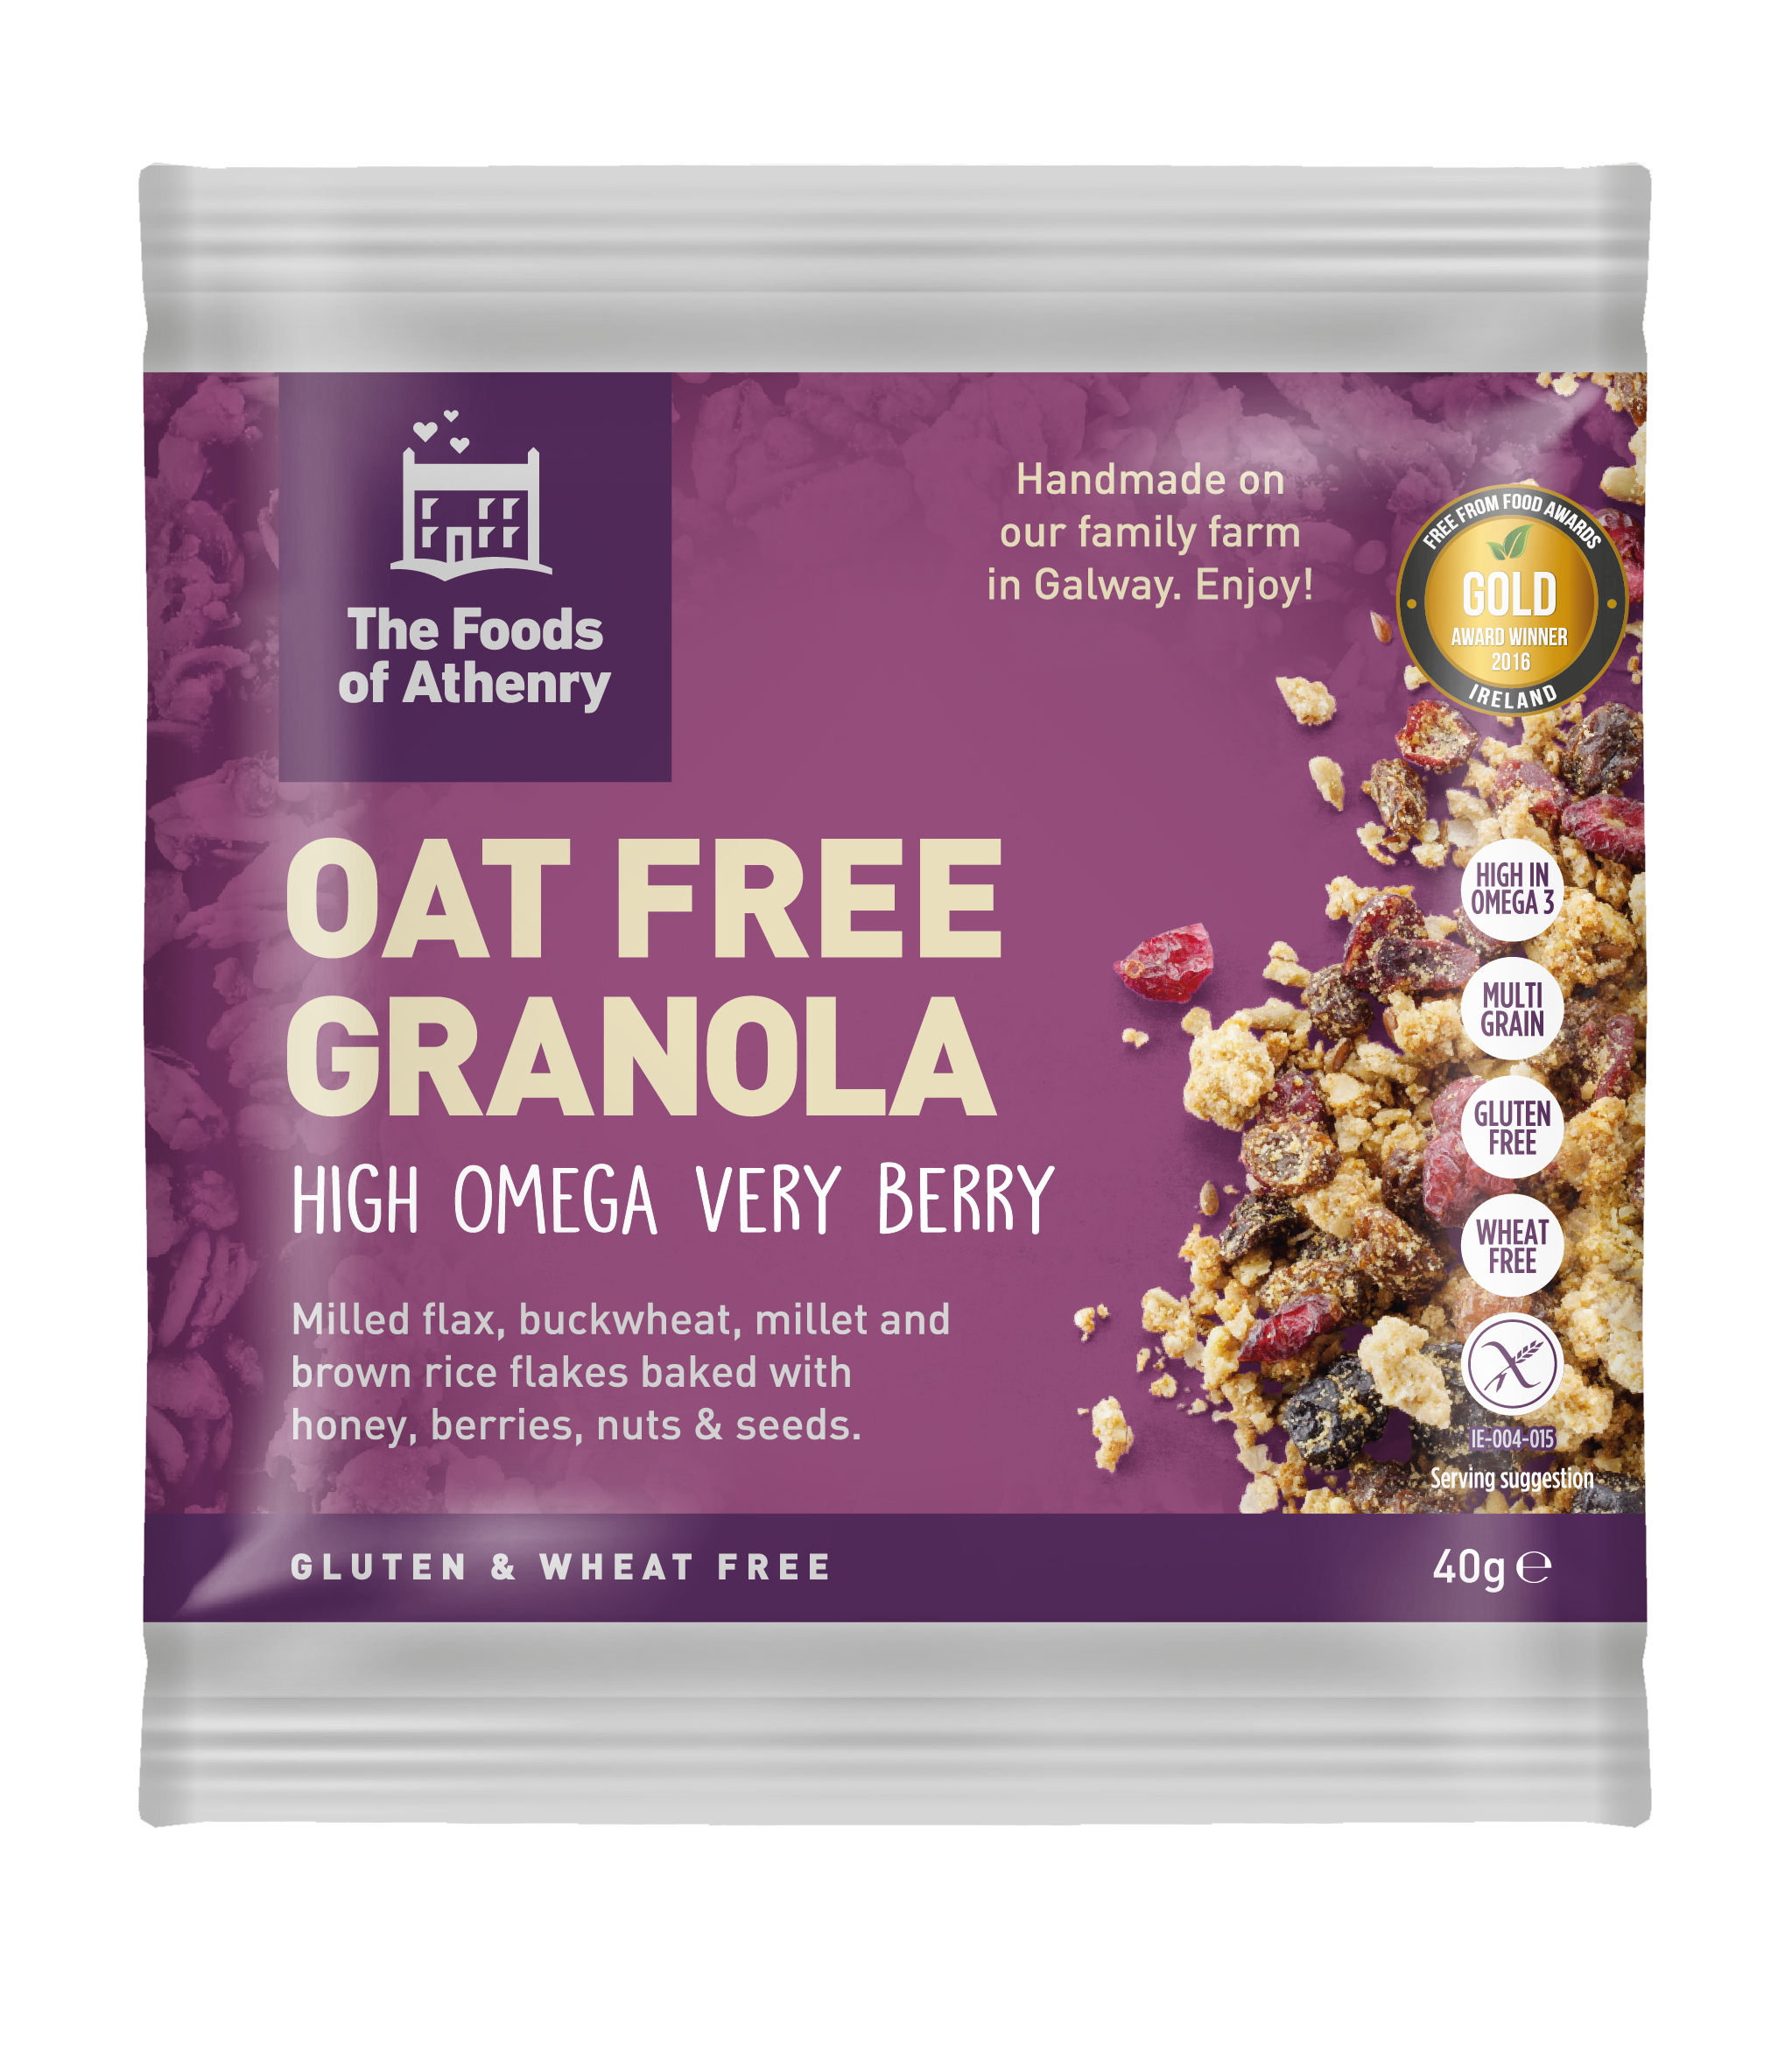 Cereal: Oat Free Granola - Gluten Free Very Berry High Omega